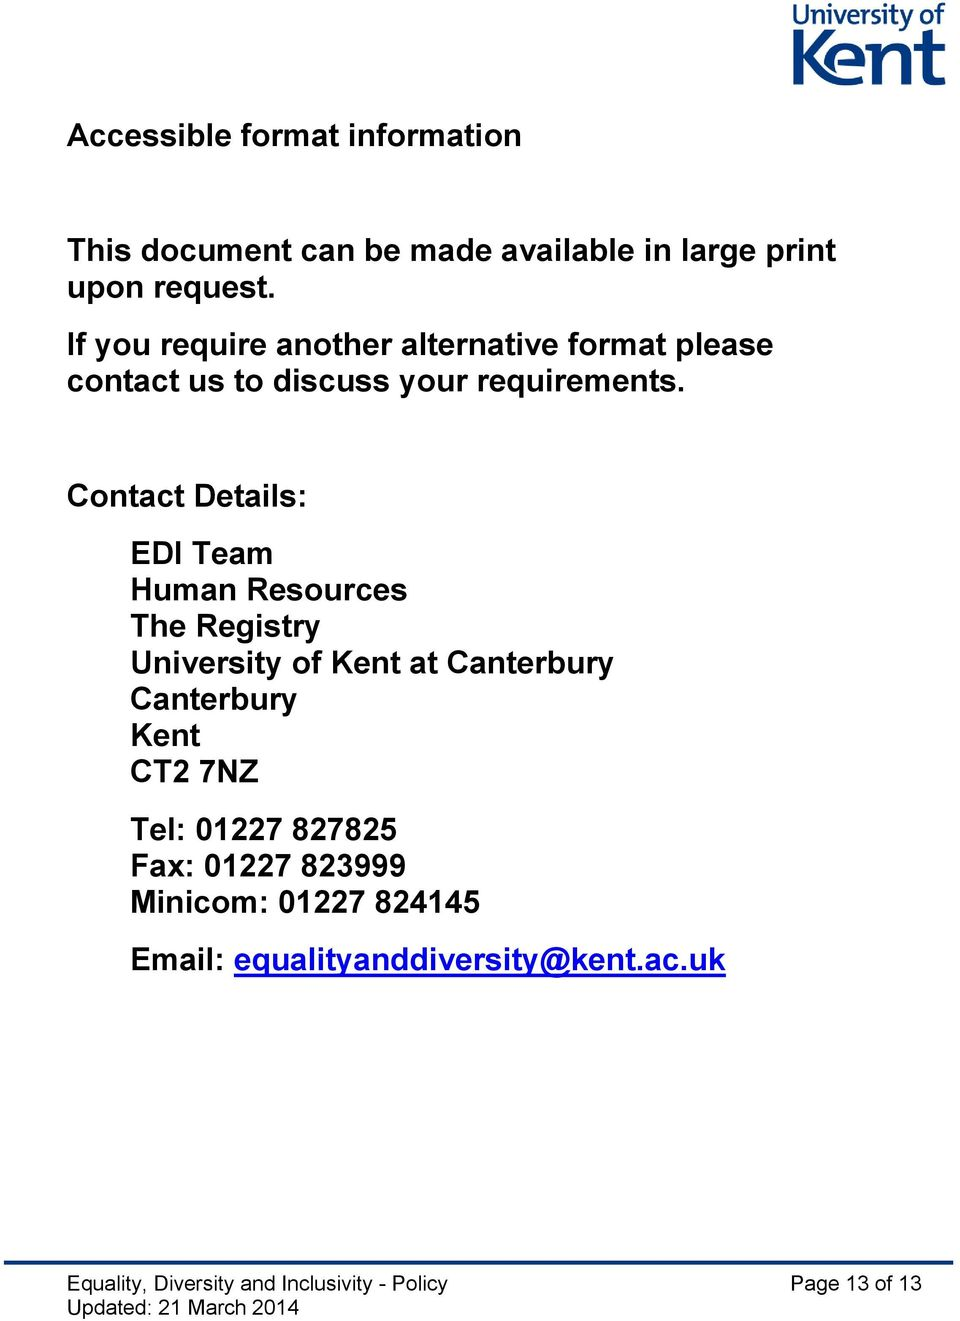 Contact Details: EDI Team Human Resources The Registry University of Kent at Canterbury Canterbury Kent CT2 7NZ